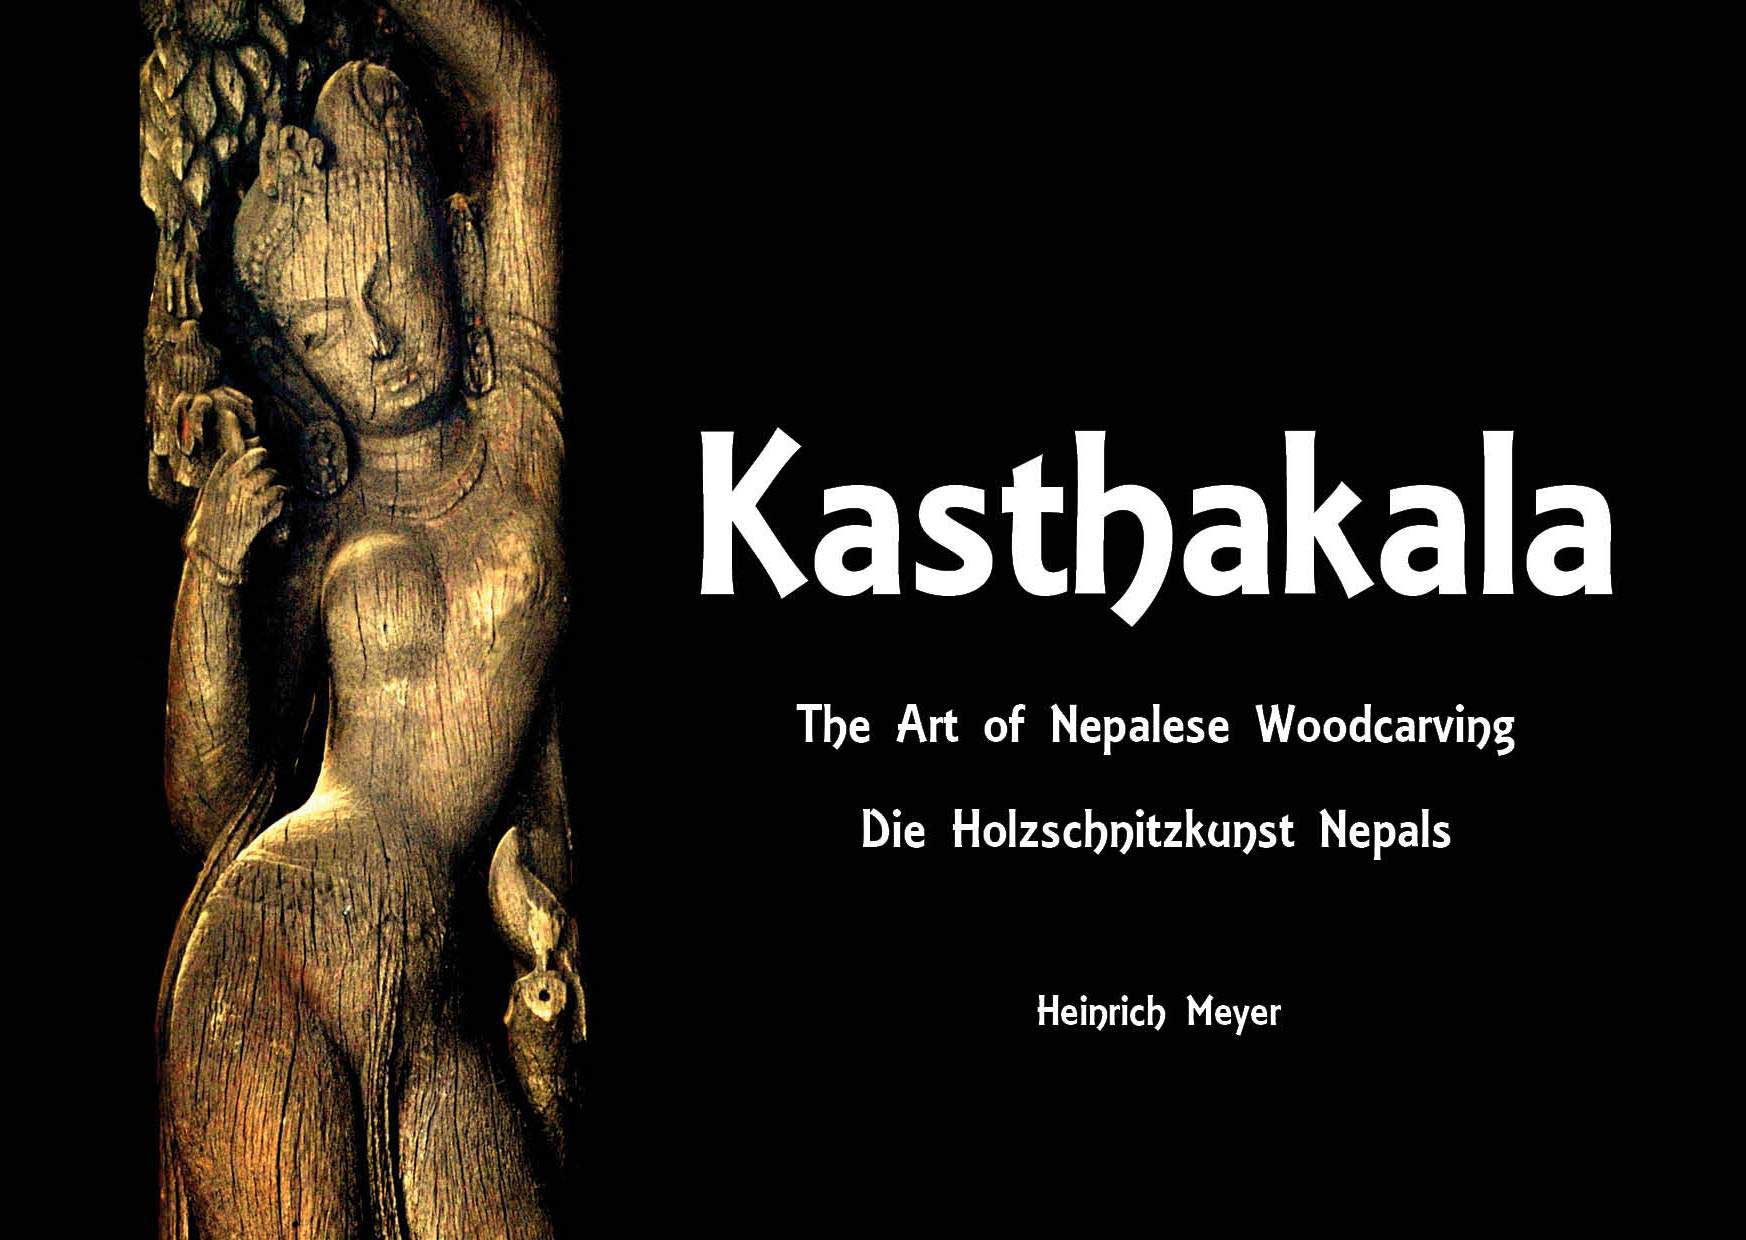 Kasthakala: The Art of Nepalese Woodcarving